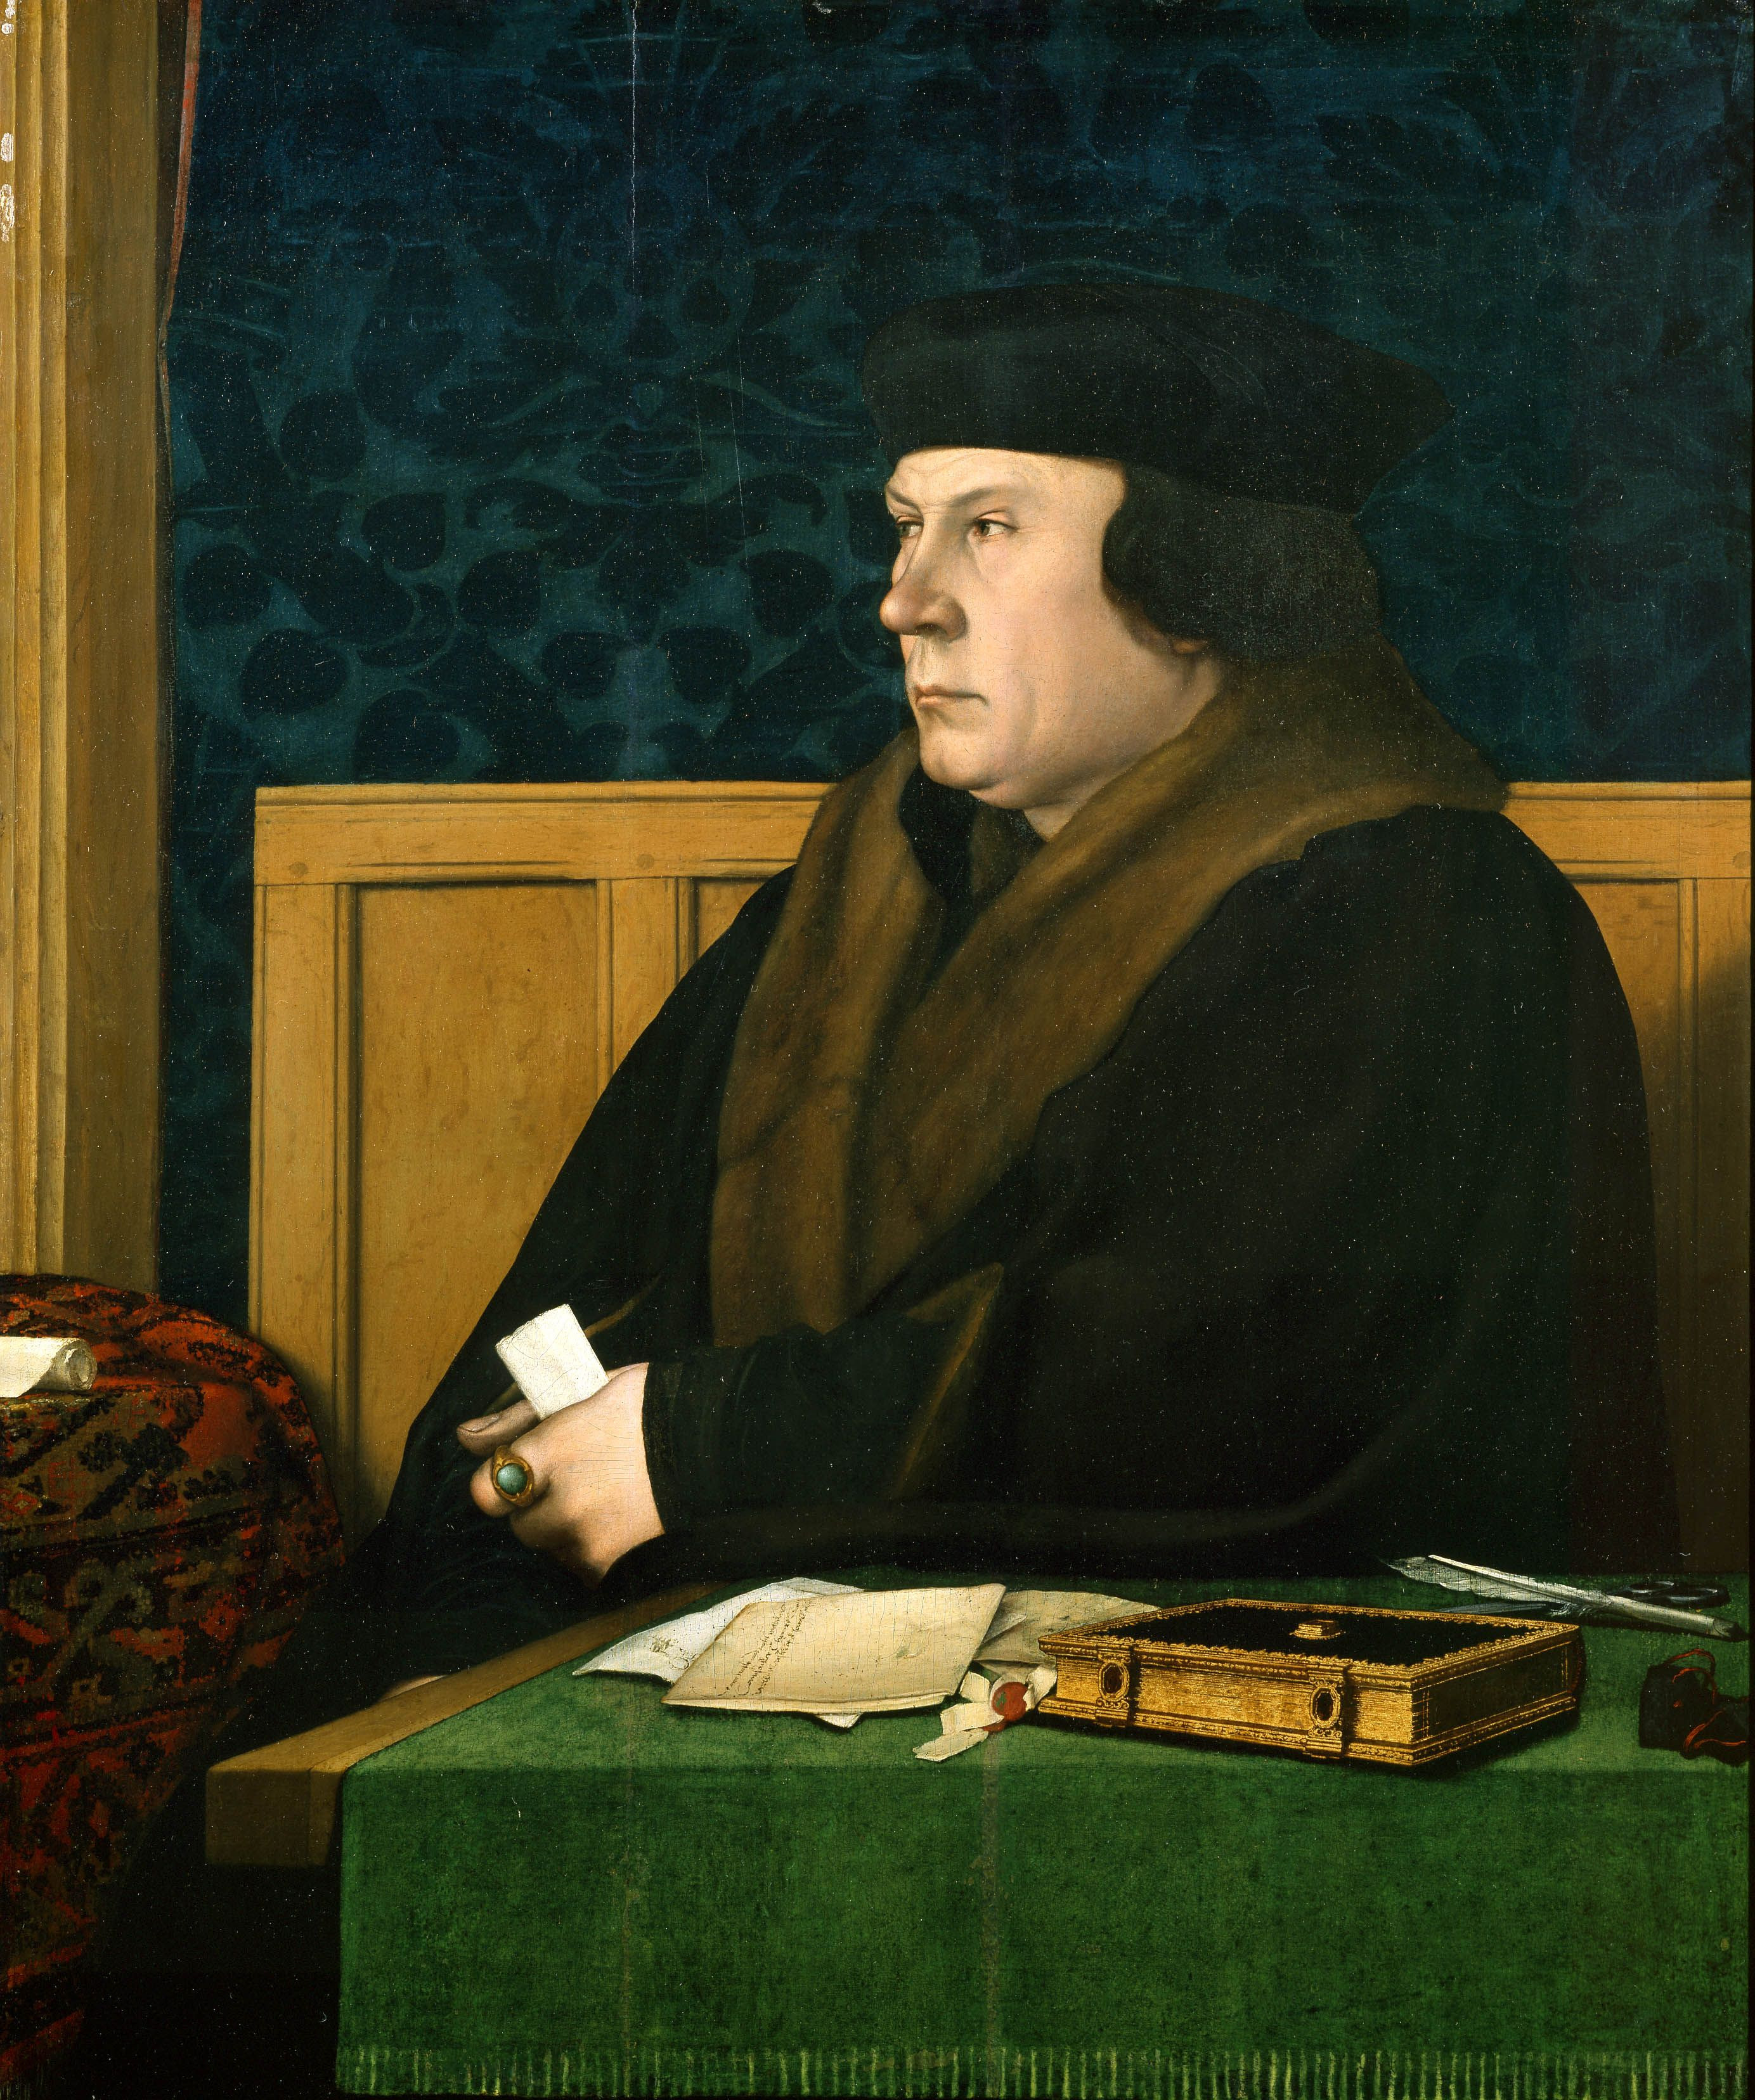 Thomas Cromwell by Hans Holbein